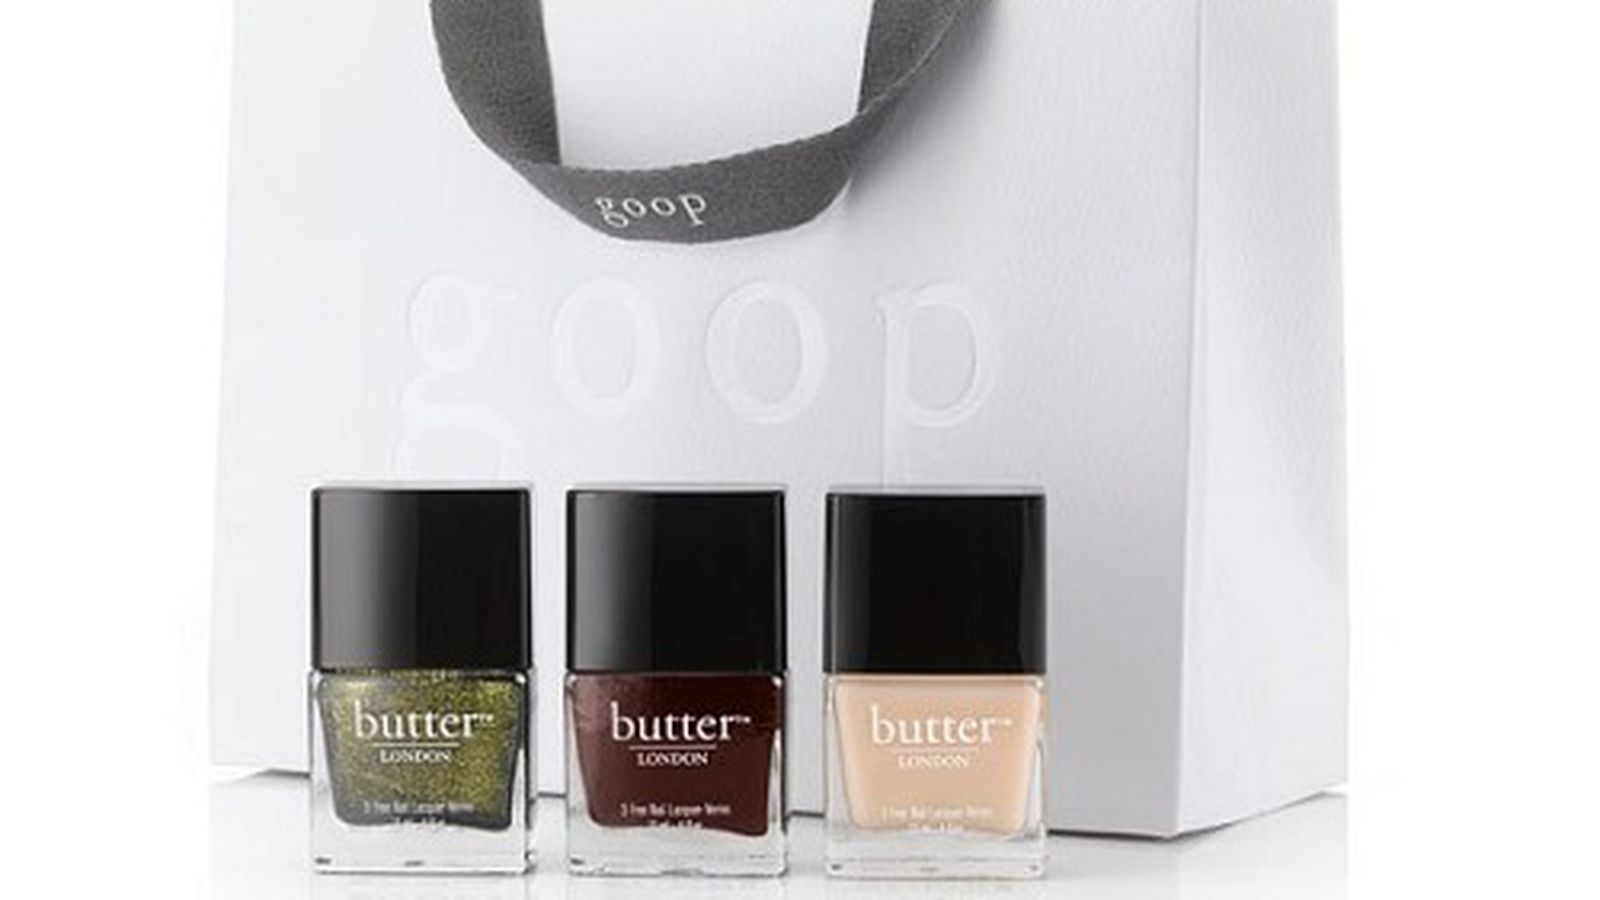 Butter London Just Made Three New Nail Polish Colors for Goop